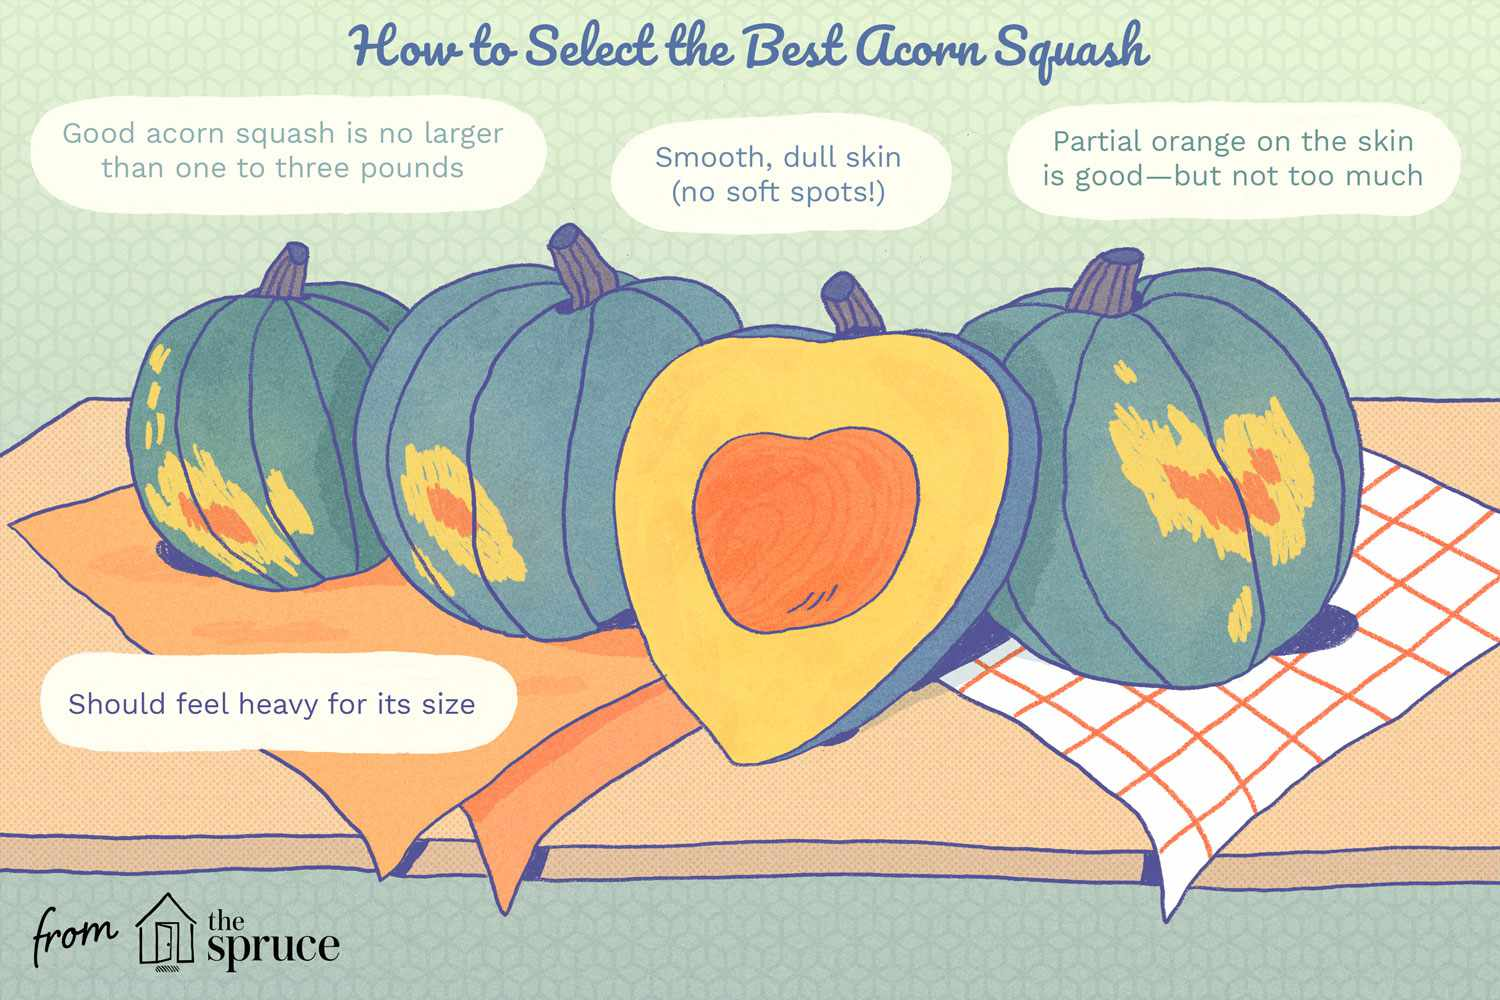 how to select the best acorn squash